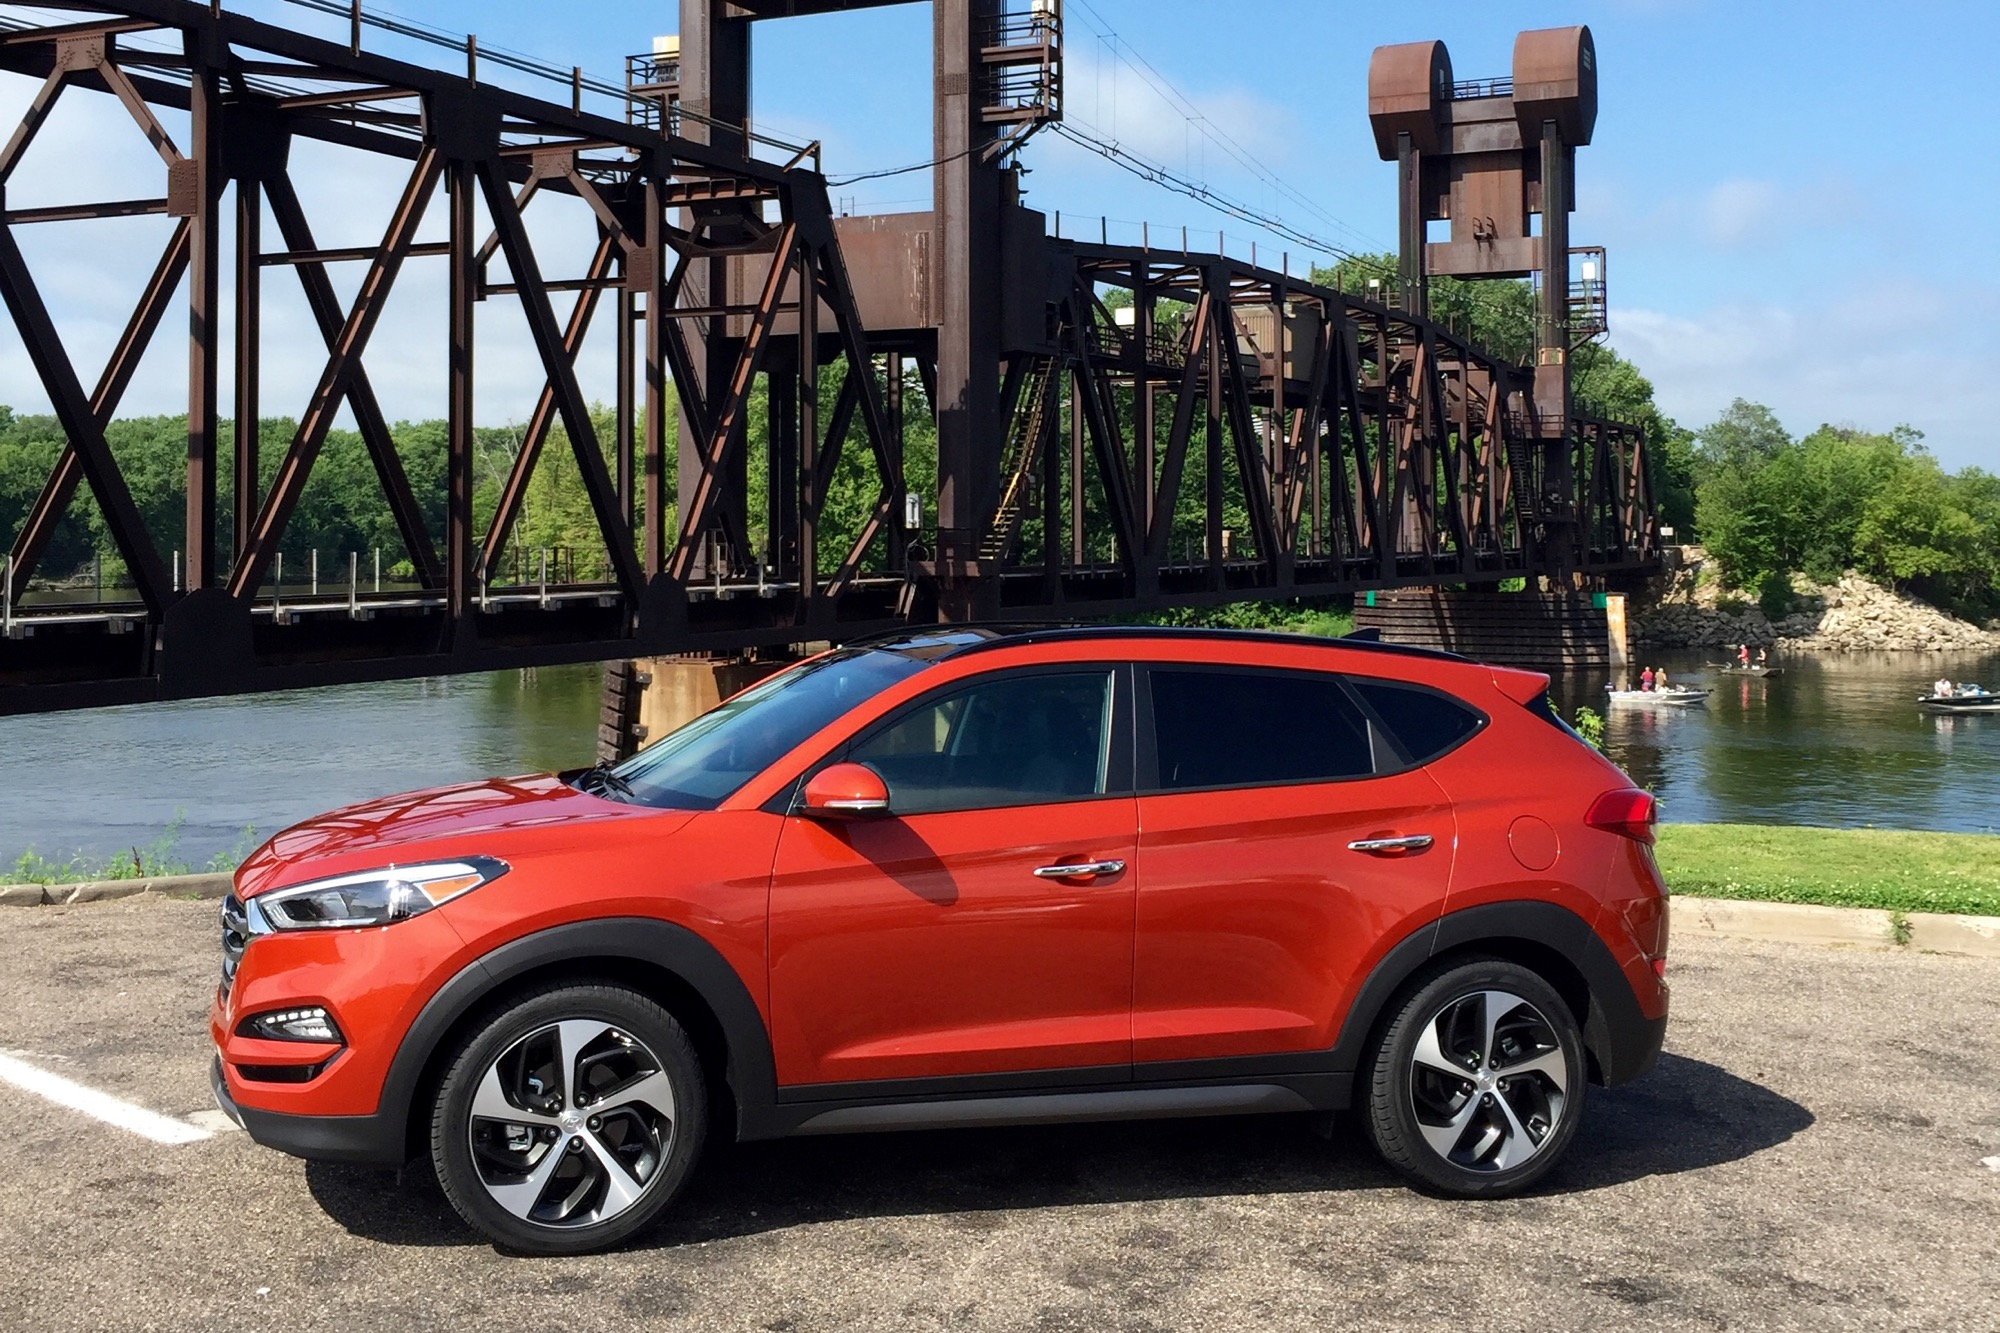 2016 Hyundai Tucson Limited AWD: Sporty, Nimble Utility ... |Orange Hyundai Tucson 2016